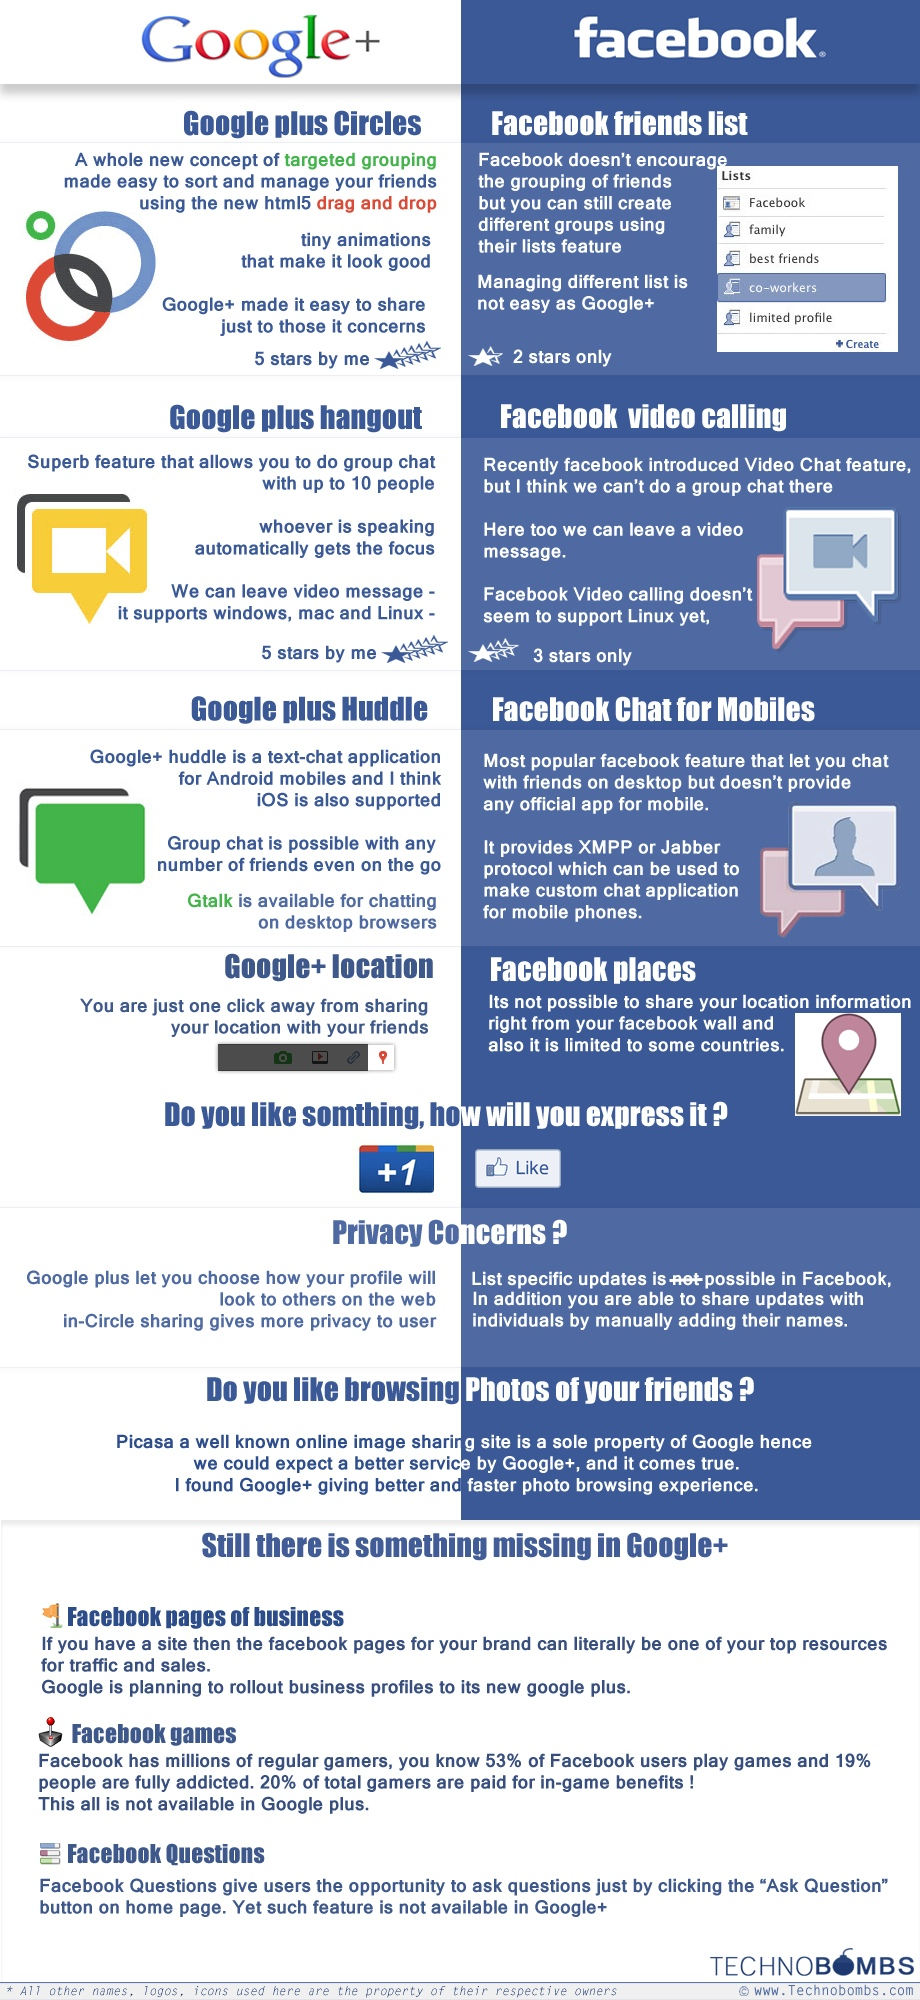 Google+ Vs. Facebook: The War Of The Internet Giants